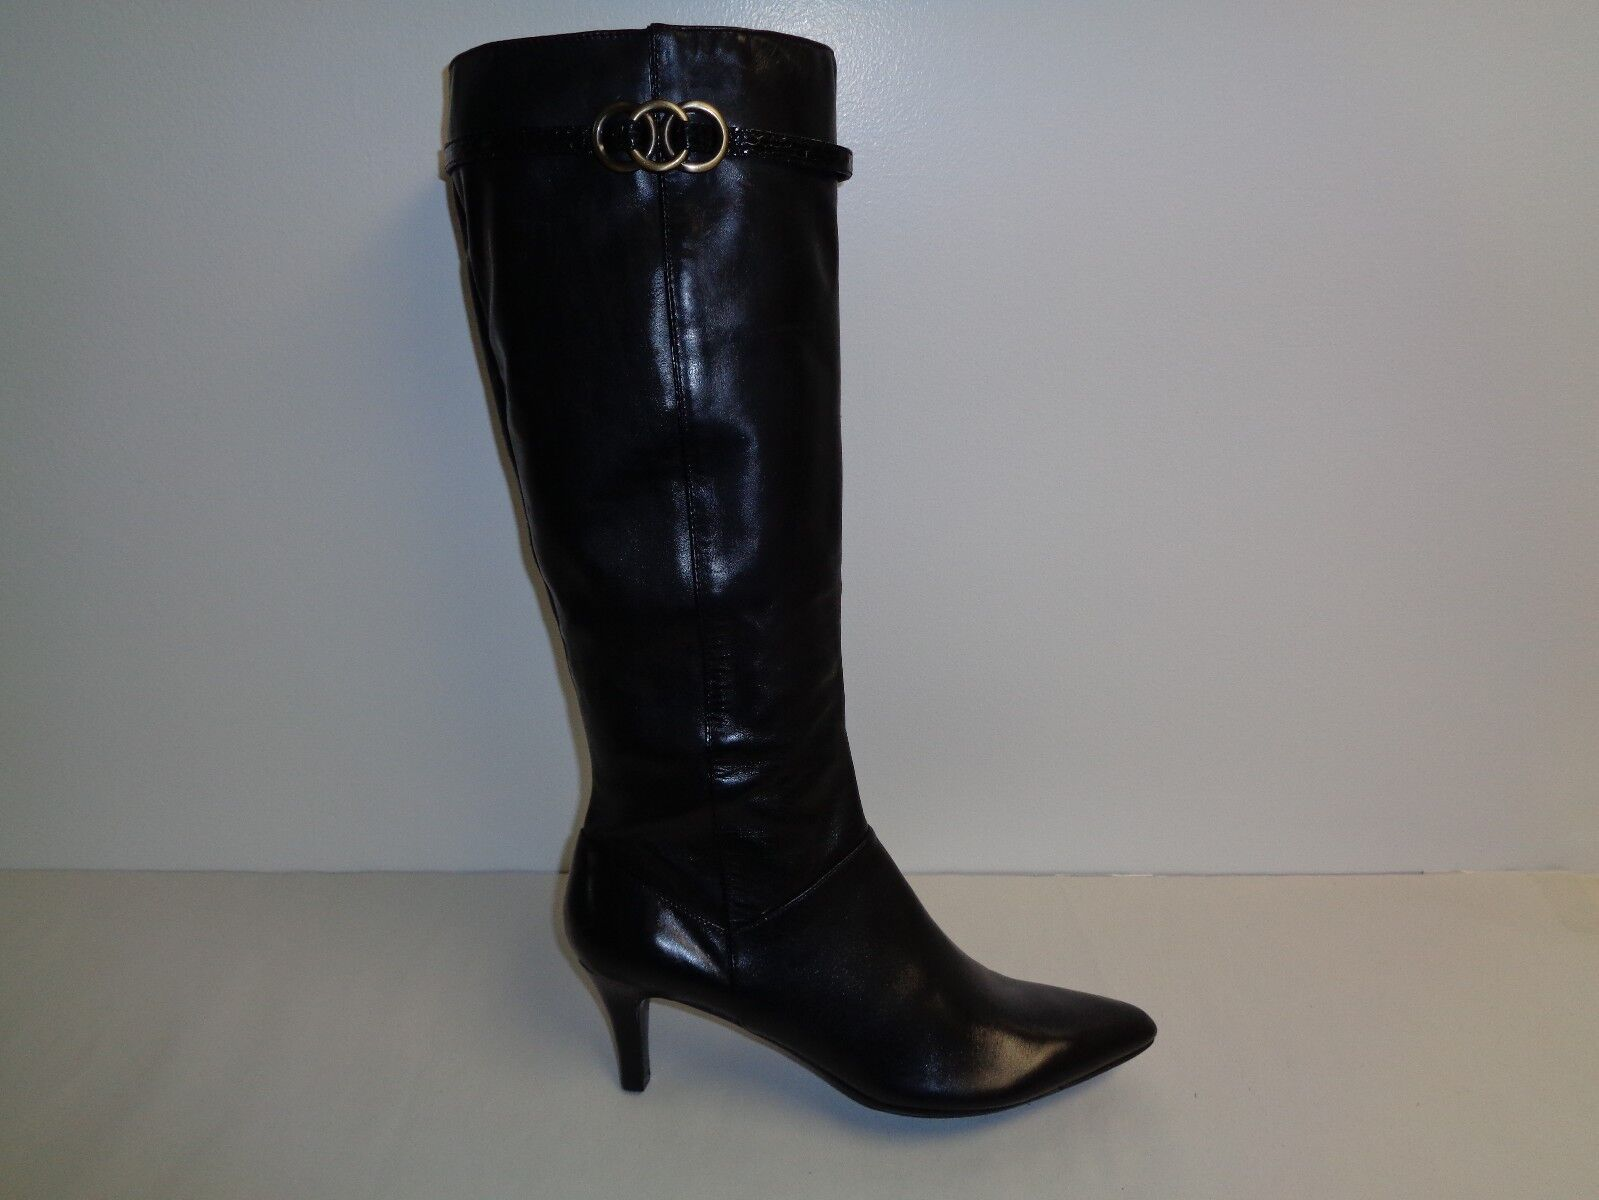 Bandolino Size 5 M GENERAL Black Leather Knee High Boots New Womens Shoes